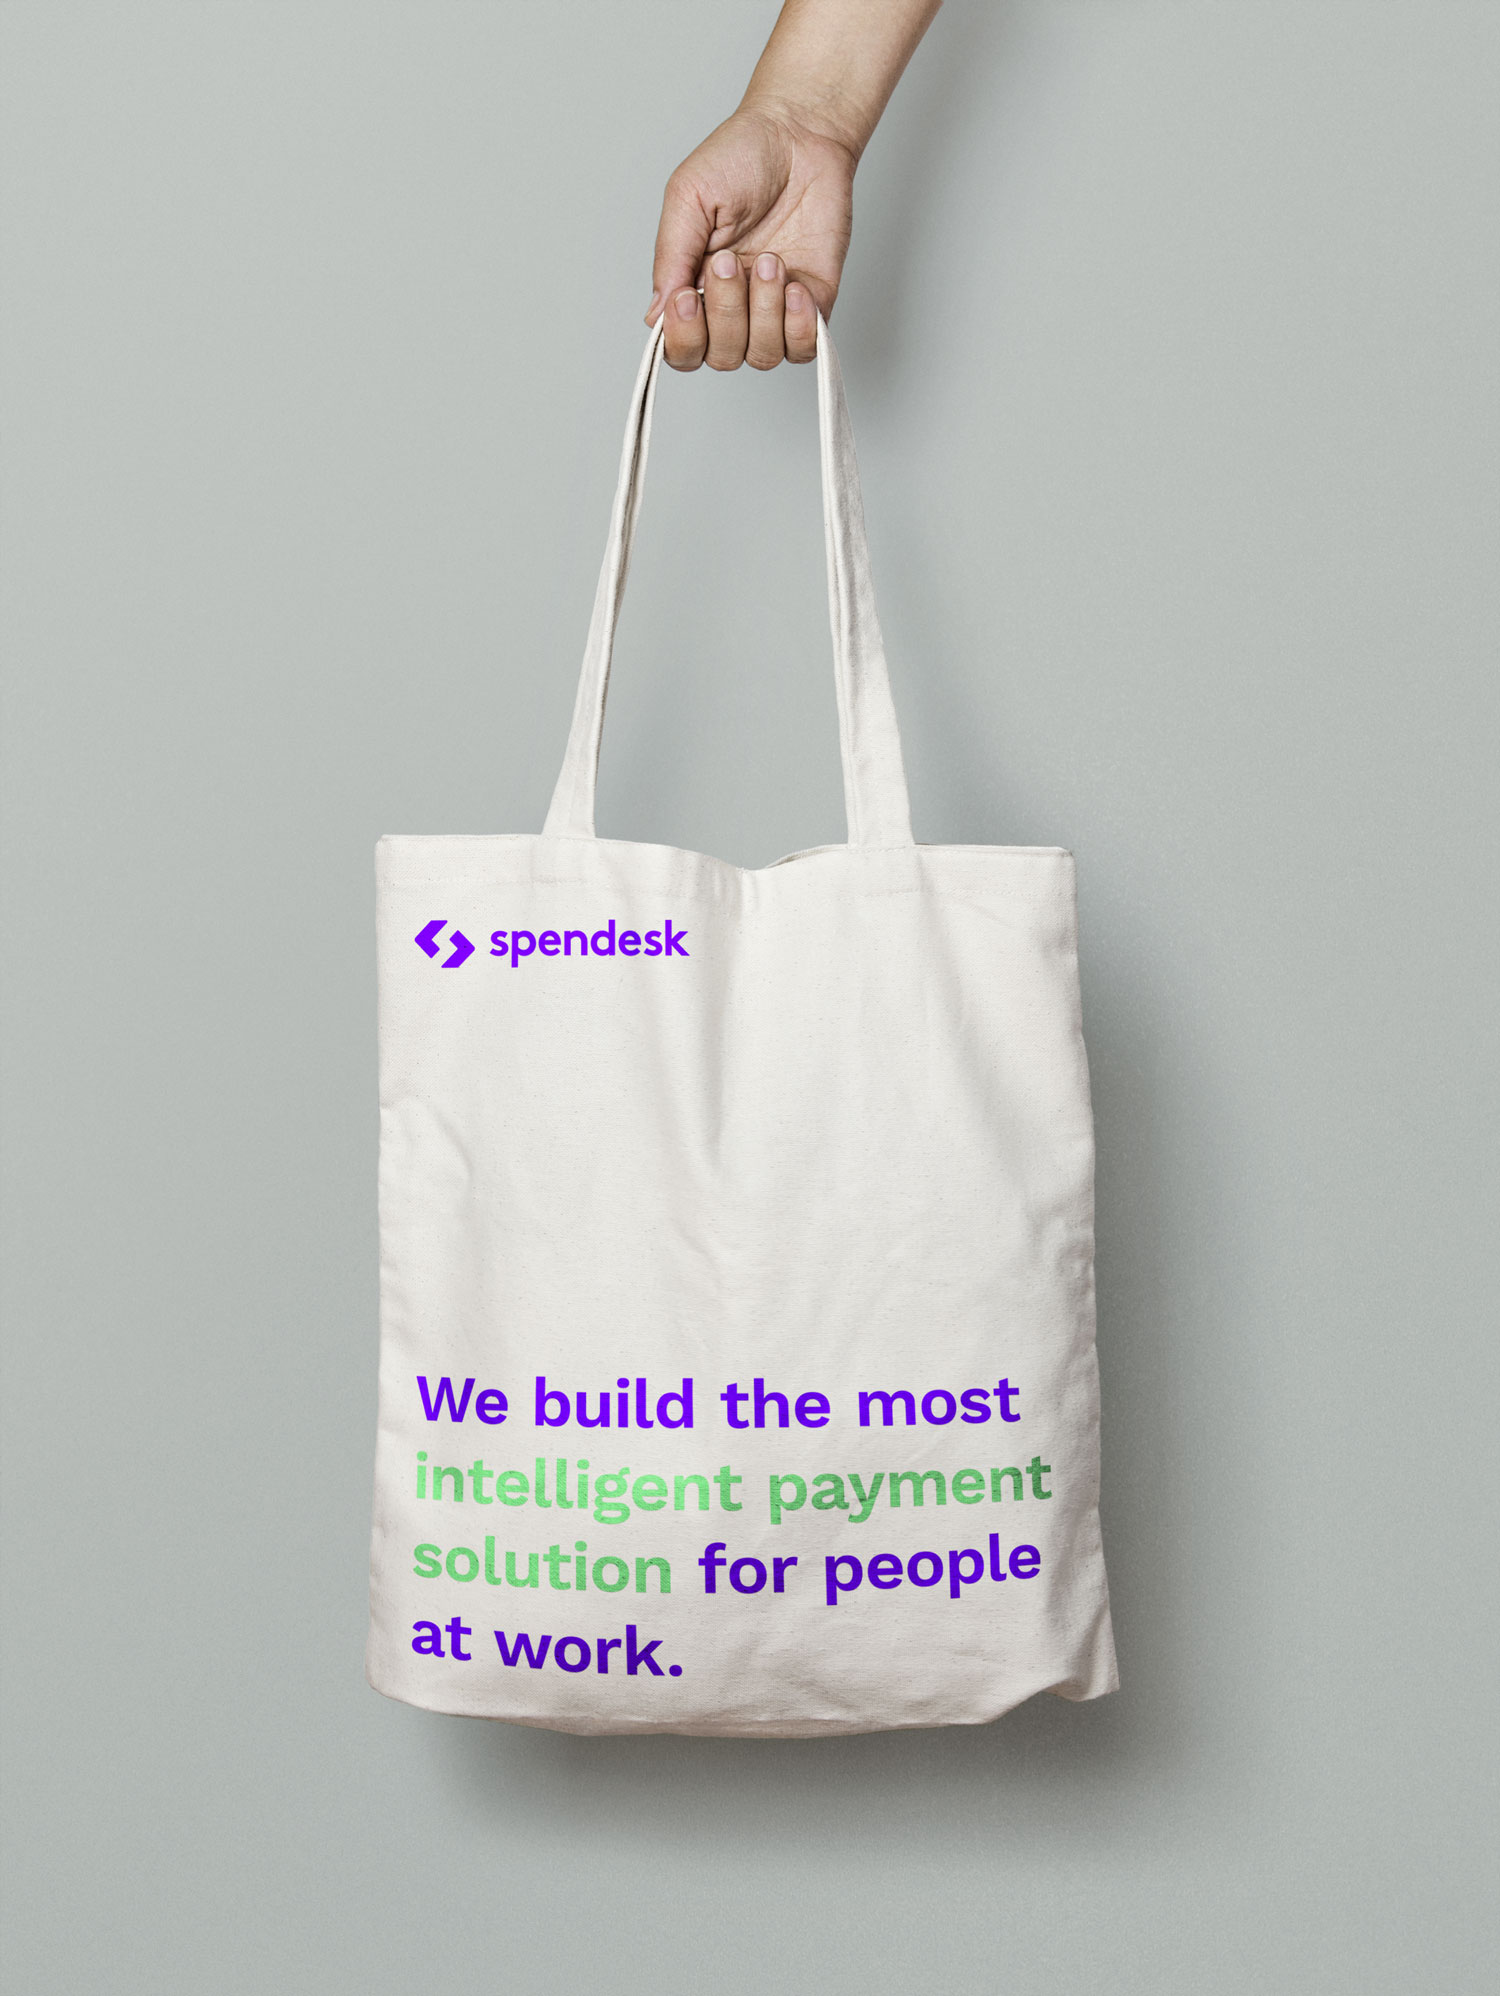 club-sandwich-spendesk-tote-bag.jpg